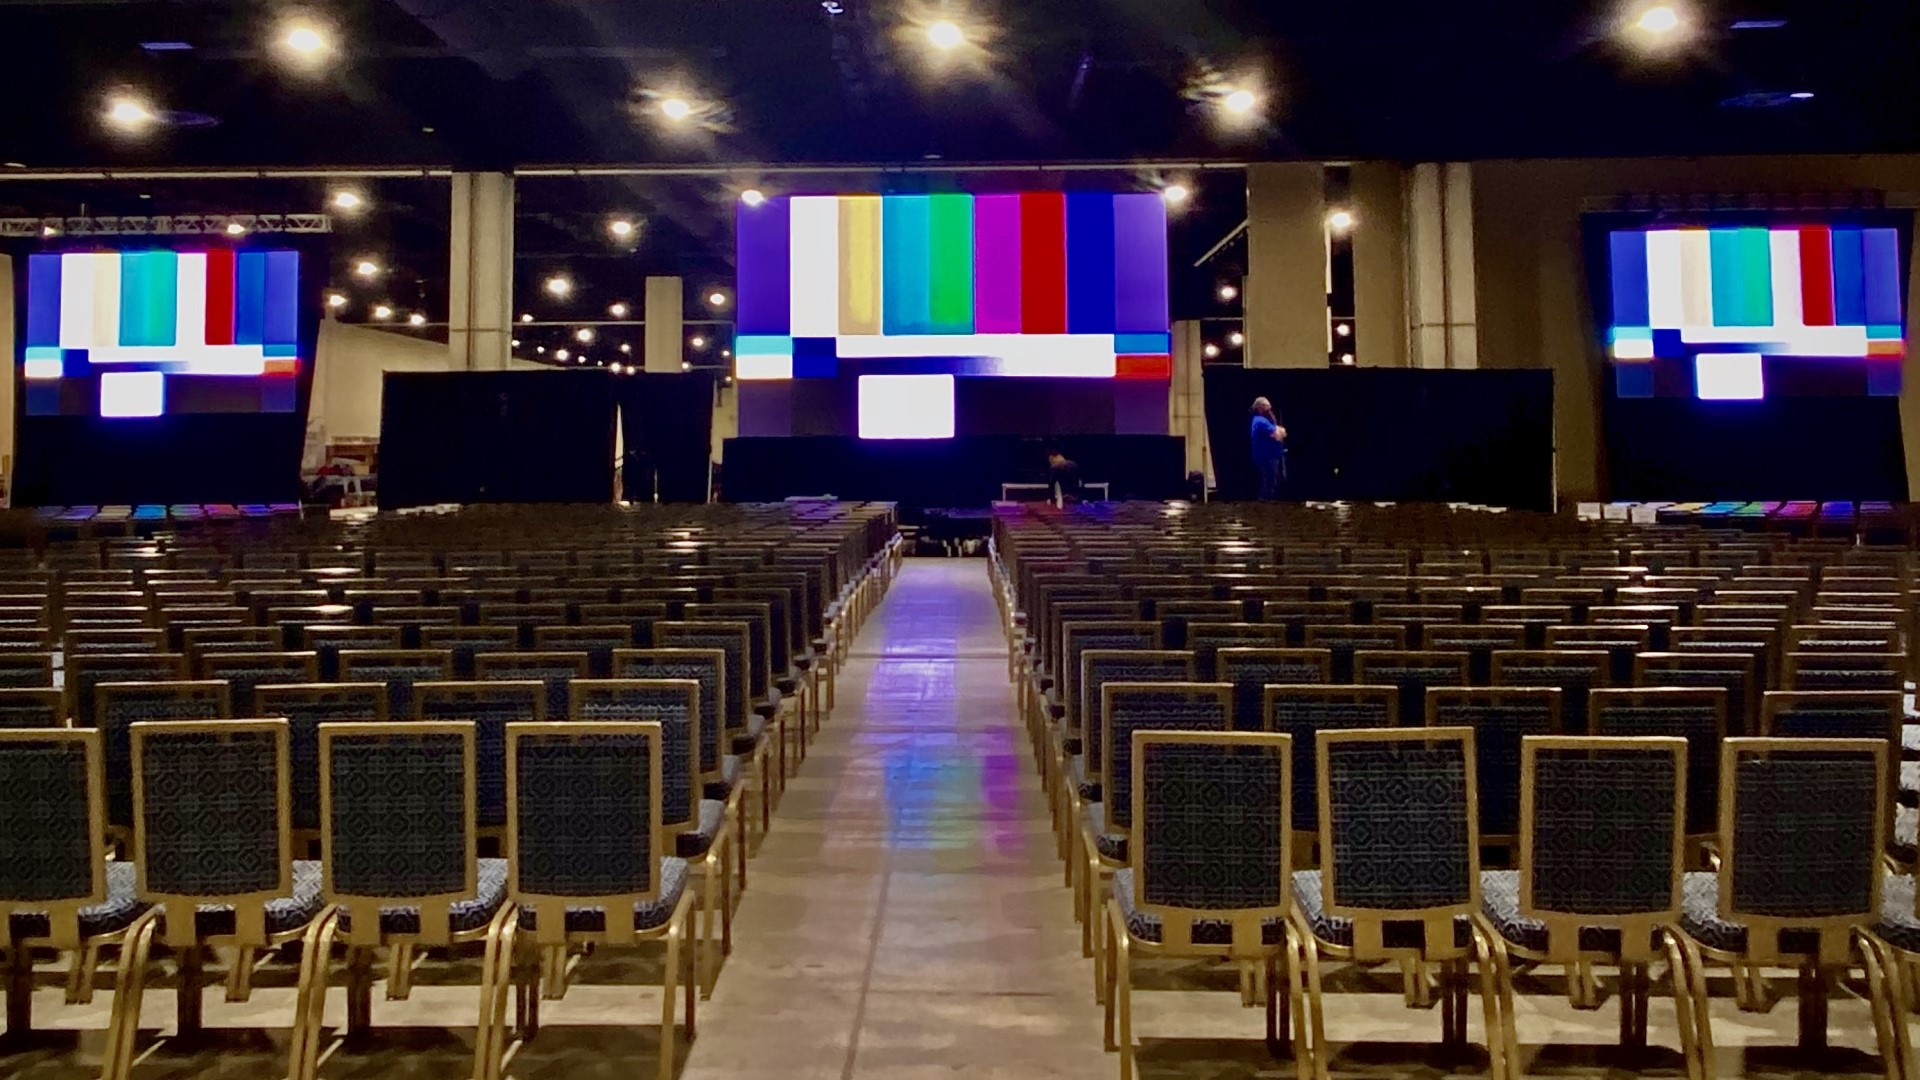 LED Video Walls provided by Klassic Sound & Stage.